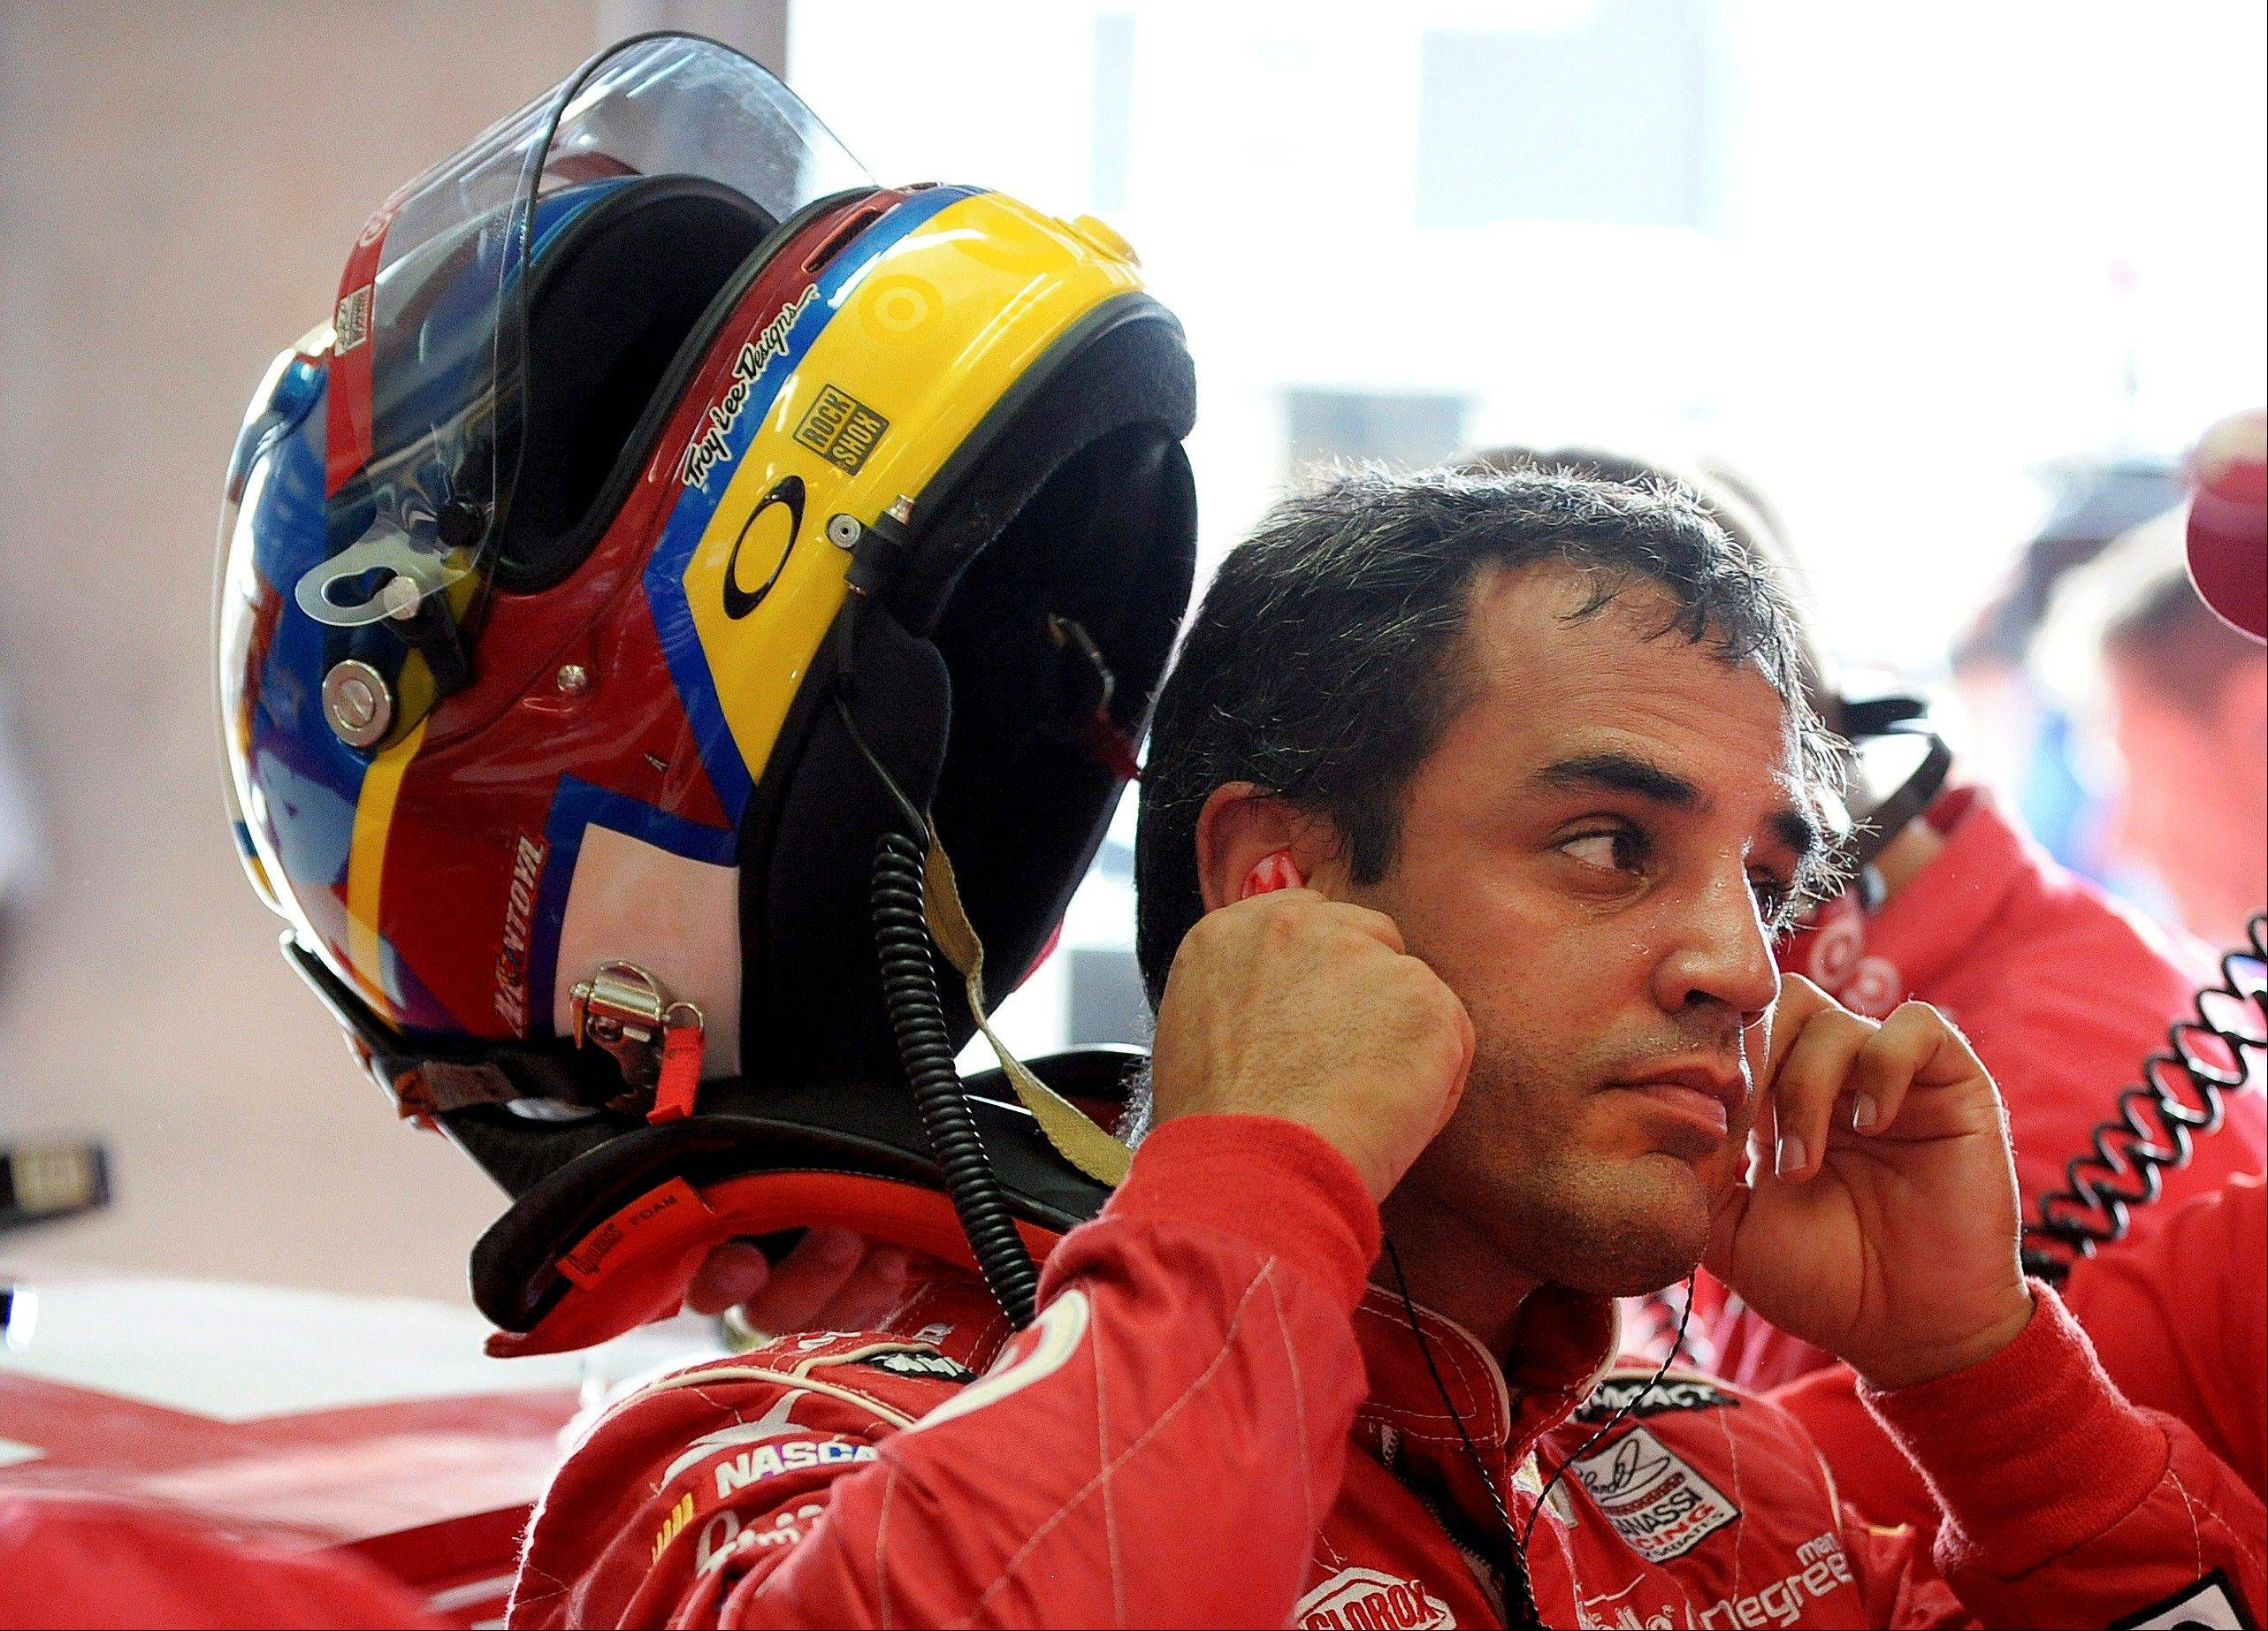 Juan Pablo Montoya won't be driving the Target car for Earnhardt Ganassi Racing next year.